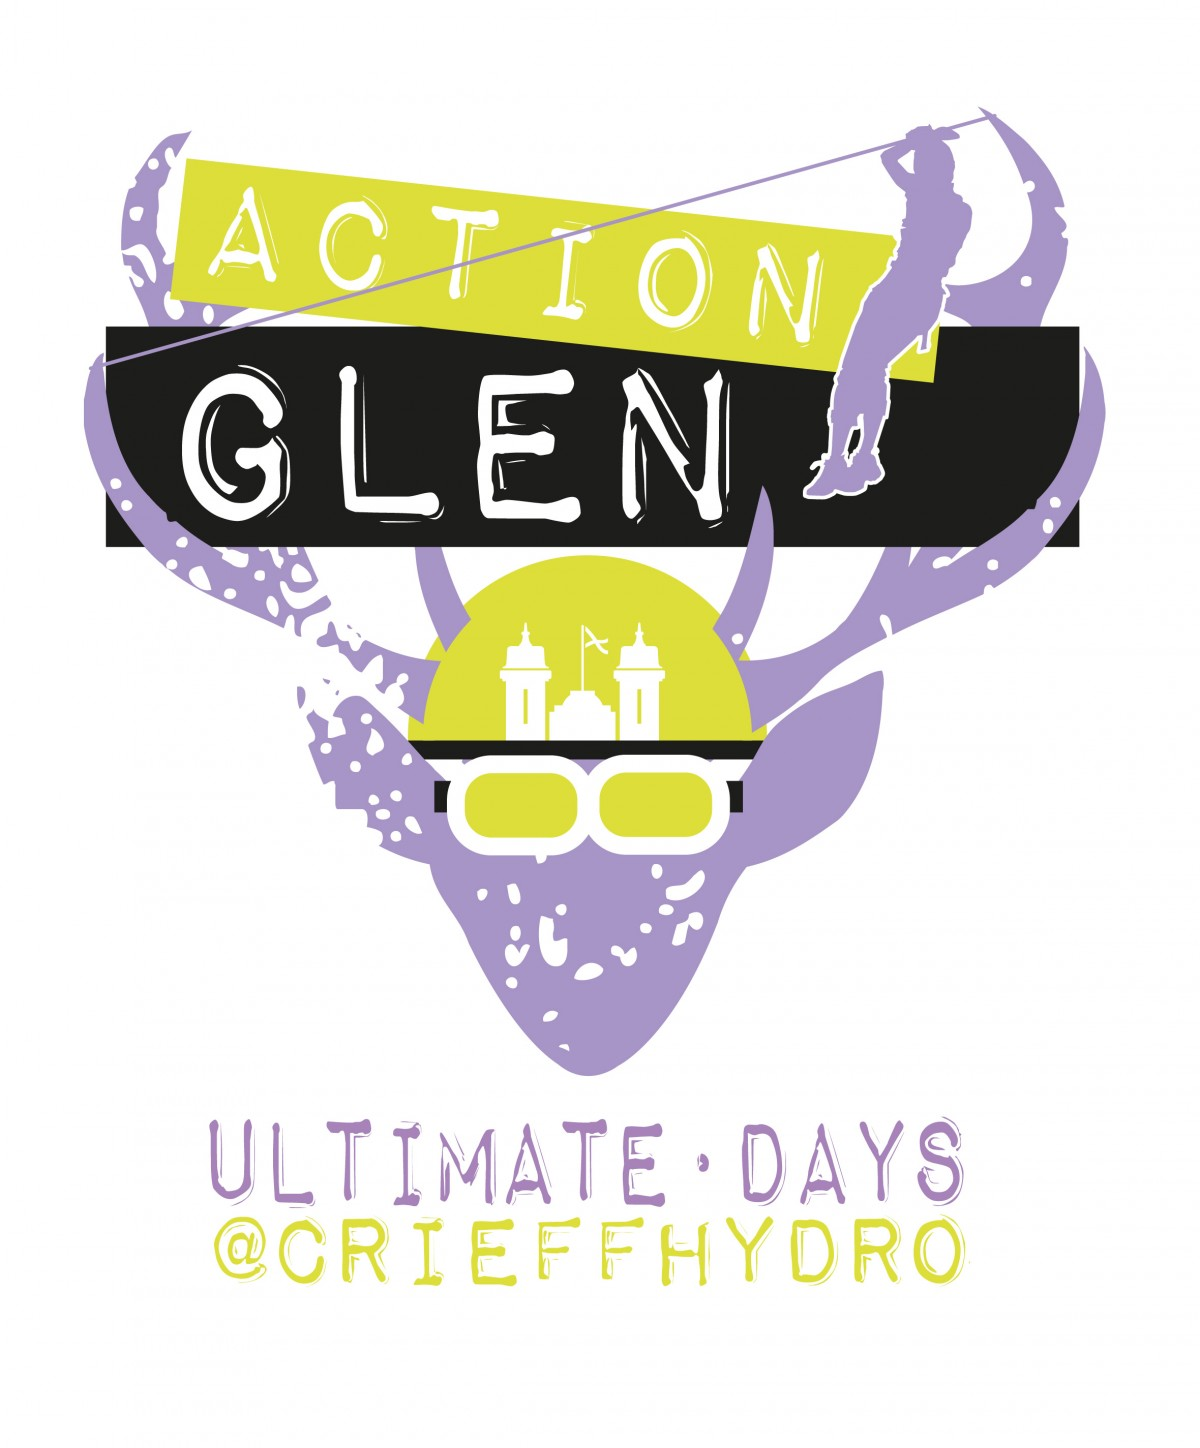 Action Glen logo